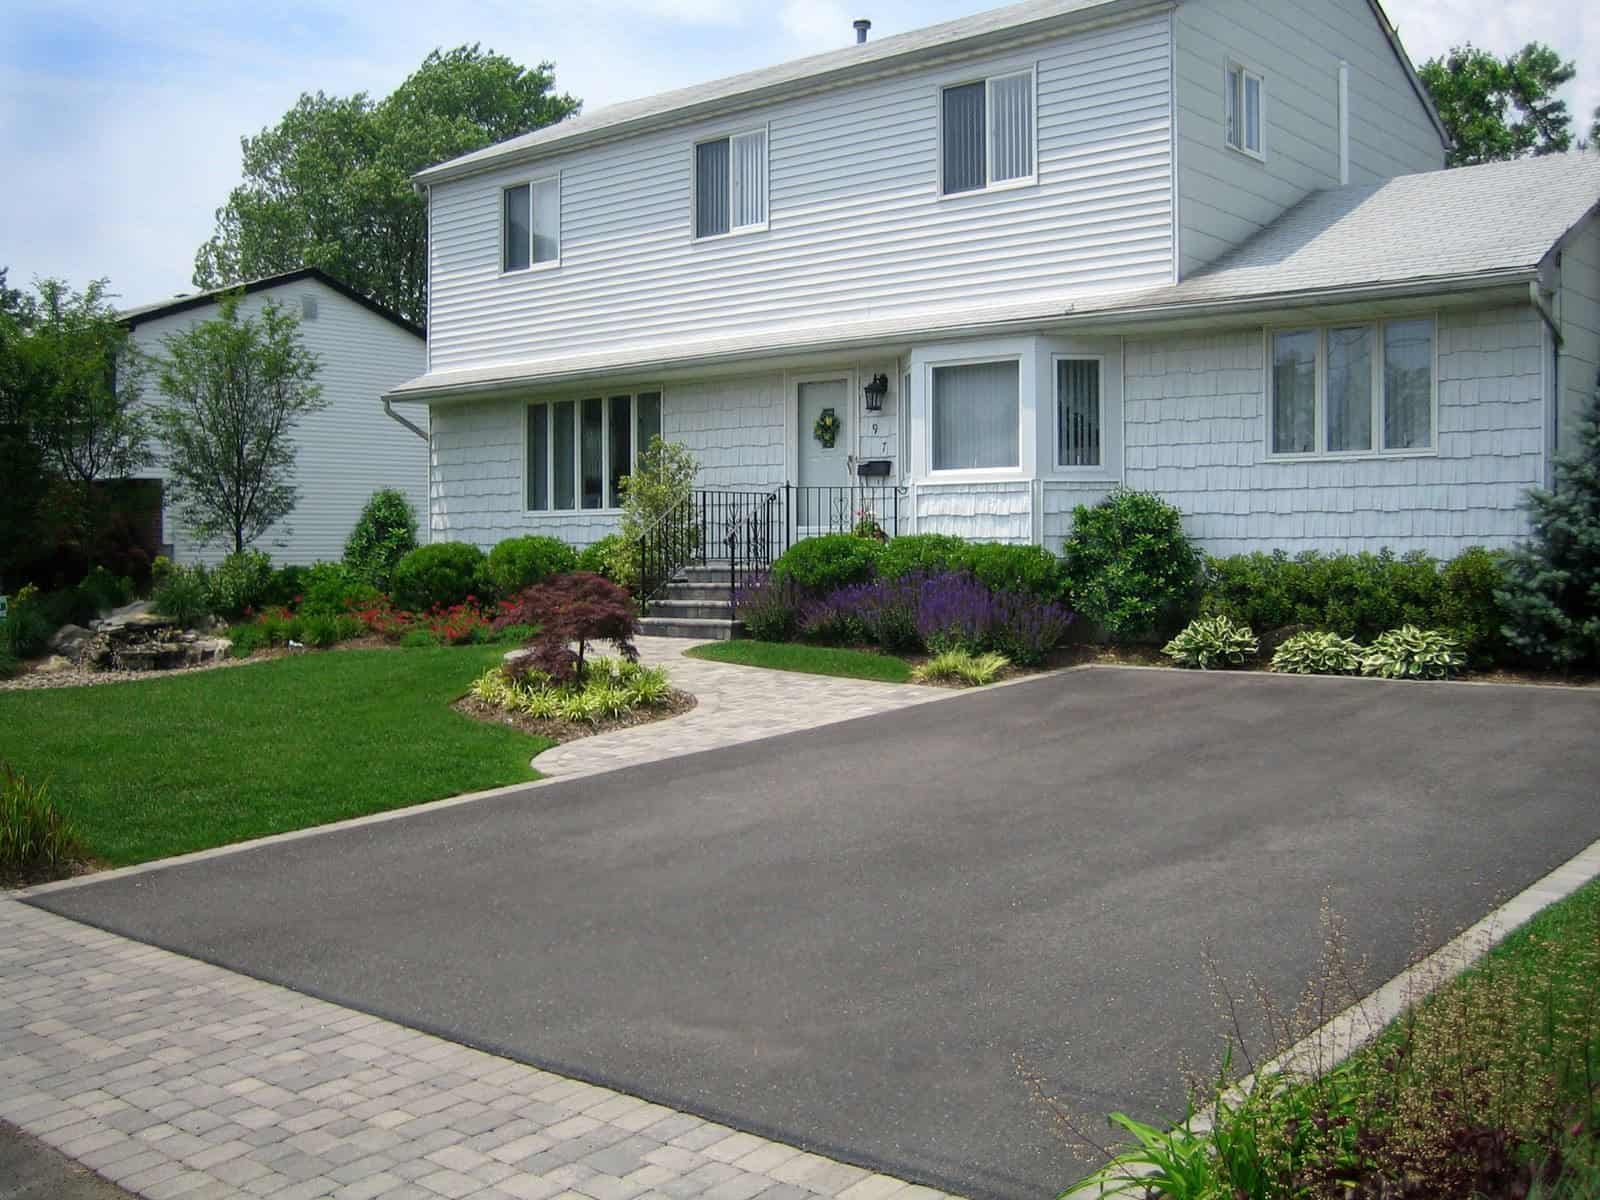 Asphalt Driveway - Nicolock Roma I & Roma II Paver Apron, Walkway, and Stoop - Color - Granite City - Dix Hills, Long Island NY